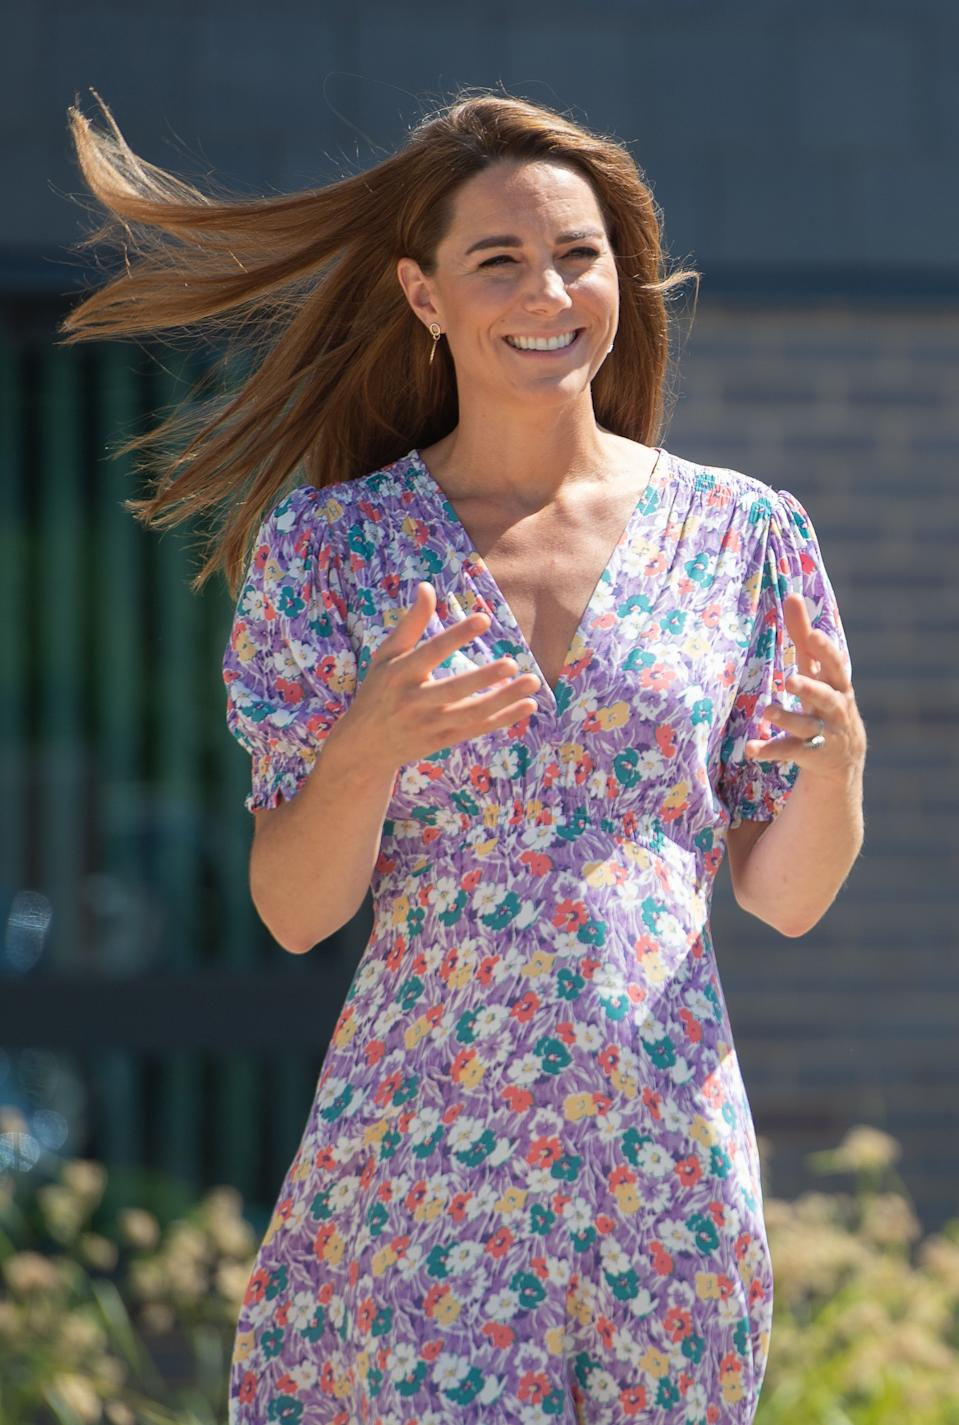 EMBARGOED: No onward transmission before 2100 BST Sat 27/6/2020. Not for publication before 2200 BST Sat 27/6/2020. The Duchess of Cambridge during a visit to The Nook in Framlingham Earl, Norfolk, which is one of the three East Anglia Children's Hospices (EACH).